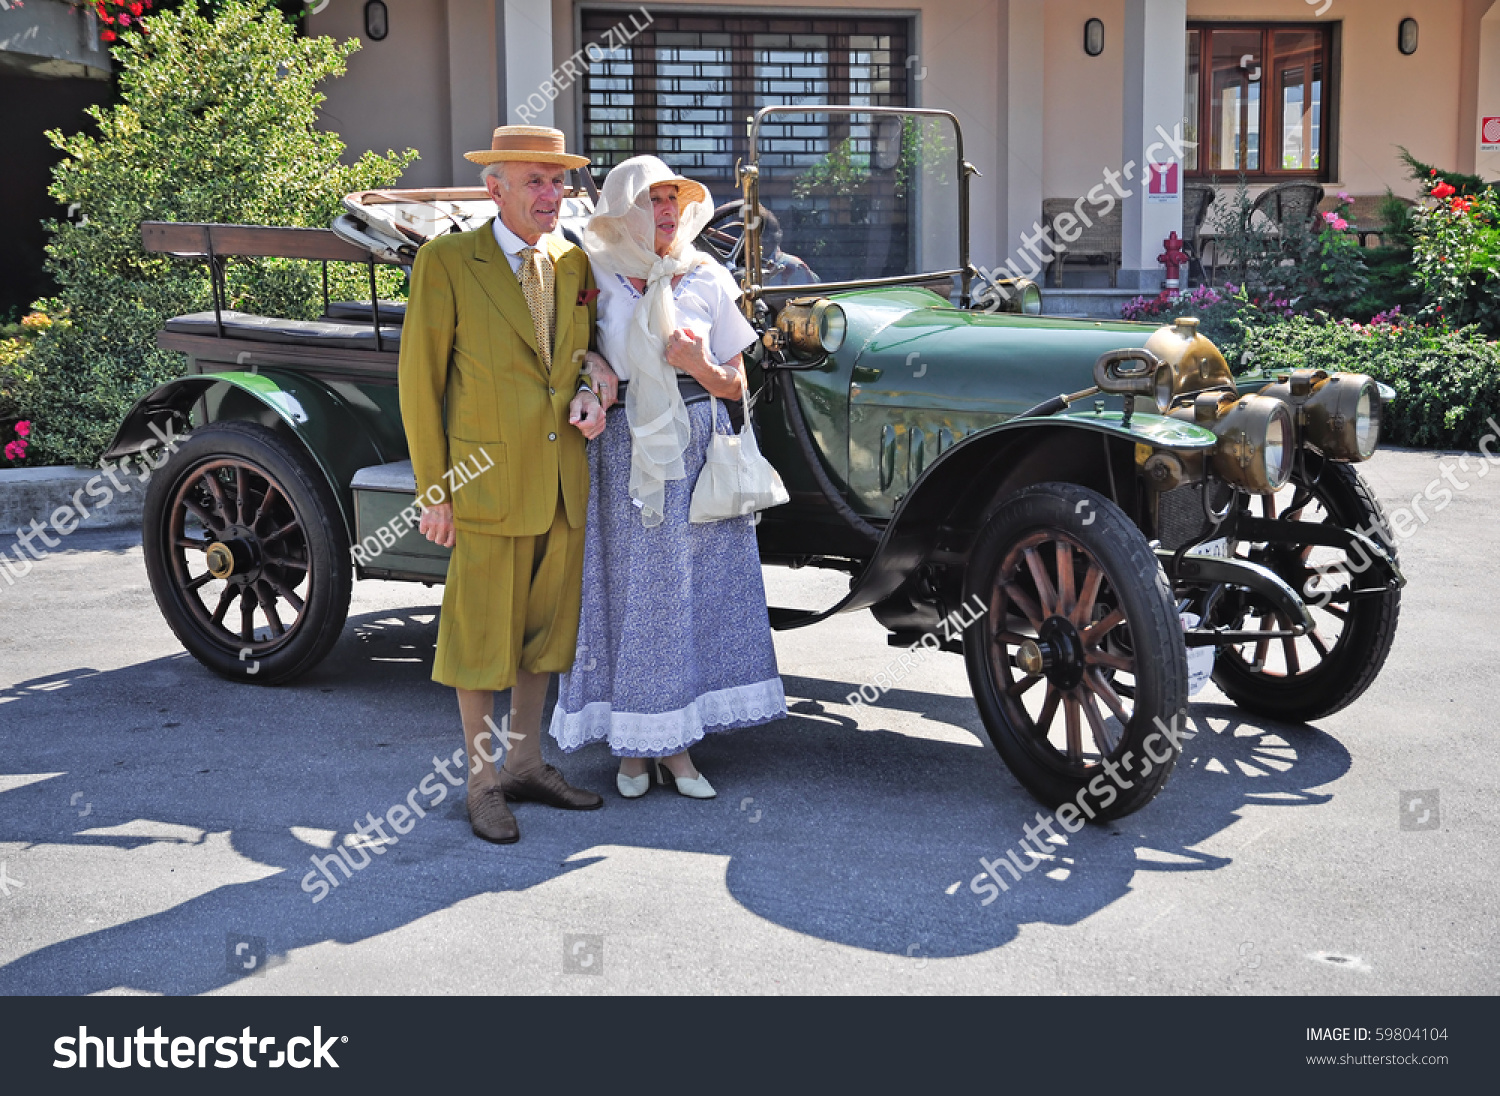 Ceva Cn August 21 Vintage Car Stock Photo (Royalty Free) 59804104 ...